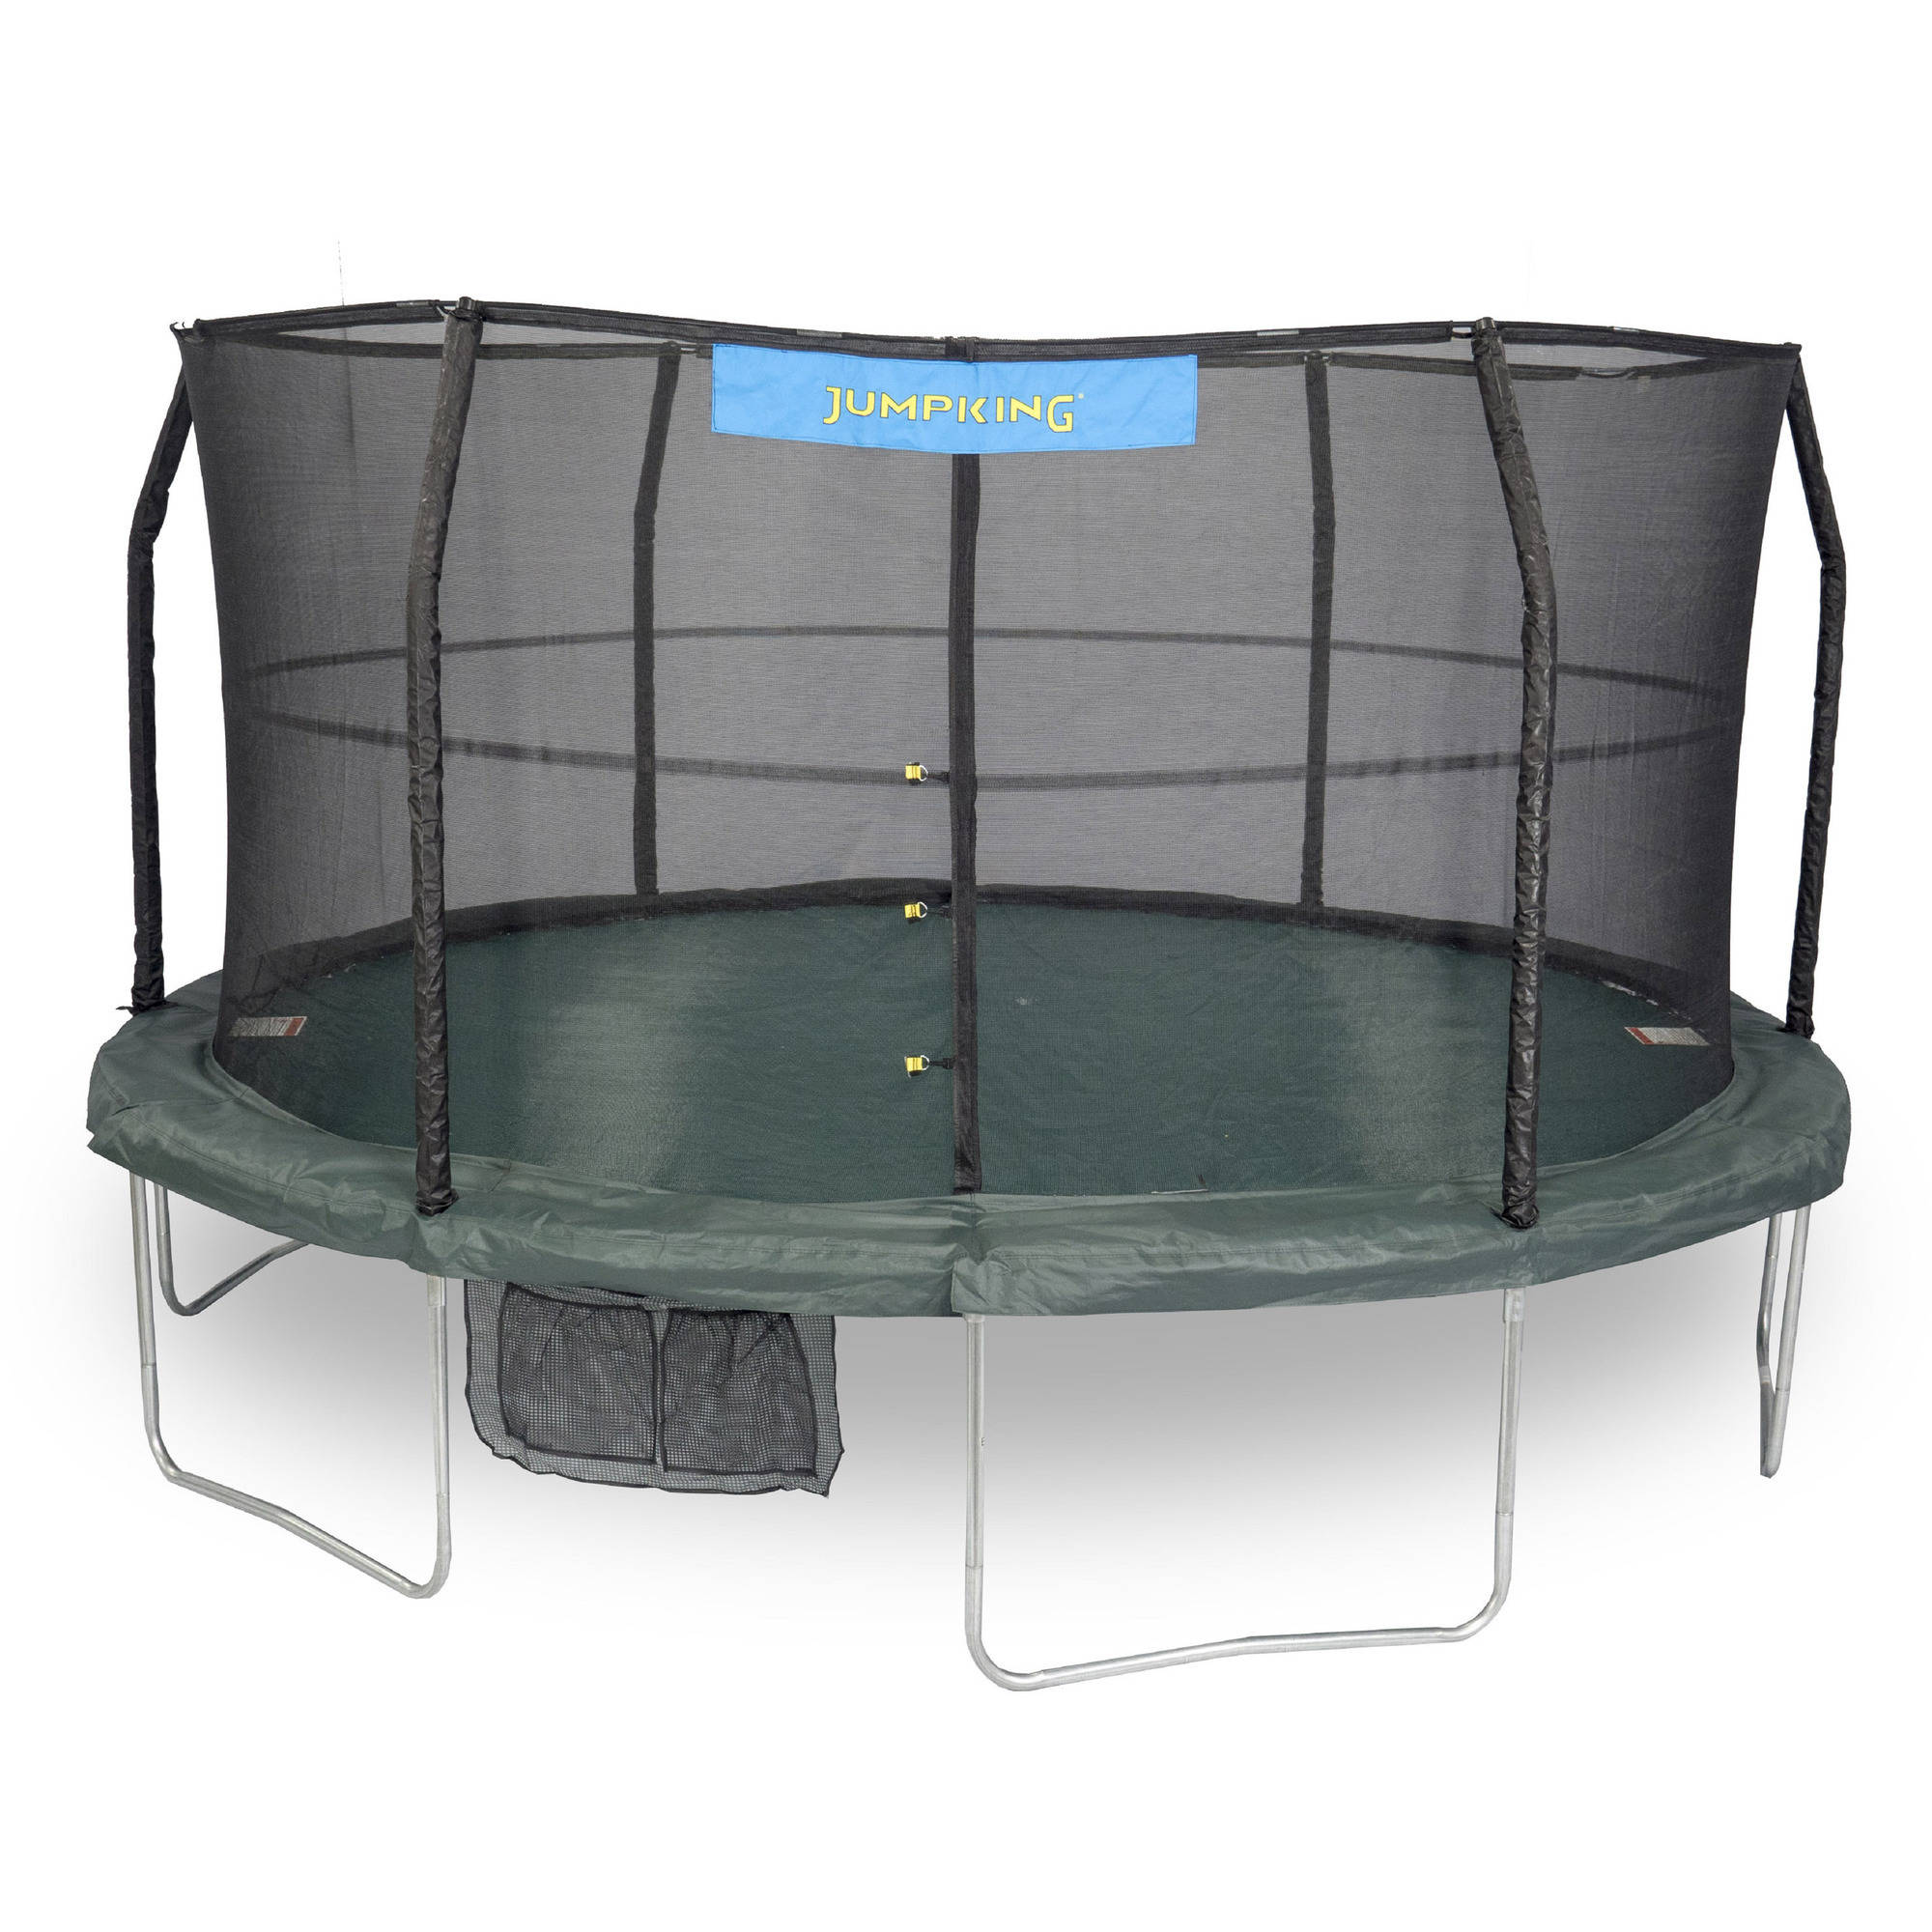 Jumpking 14-Foot Trampoline, with Safety Enclosure, Green (Box 1 of 2)